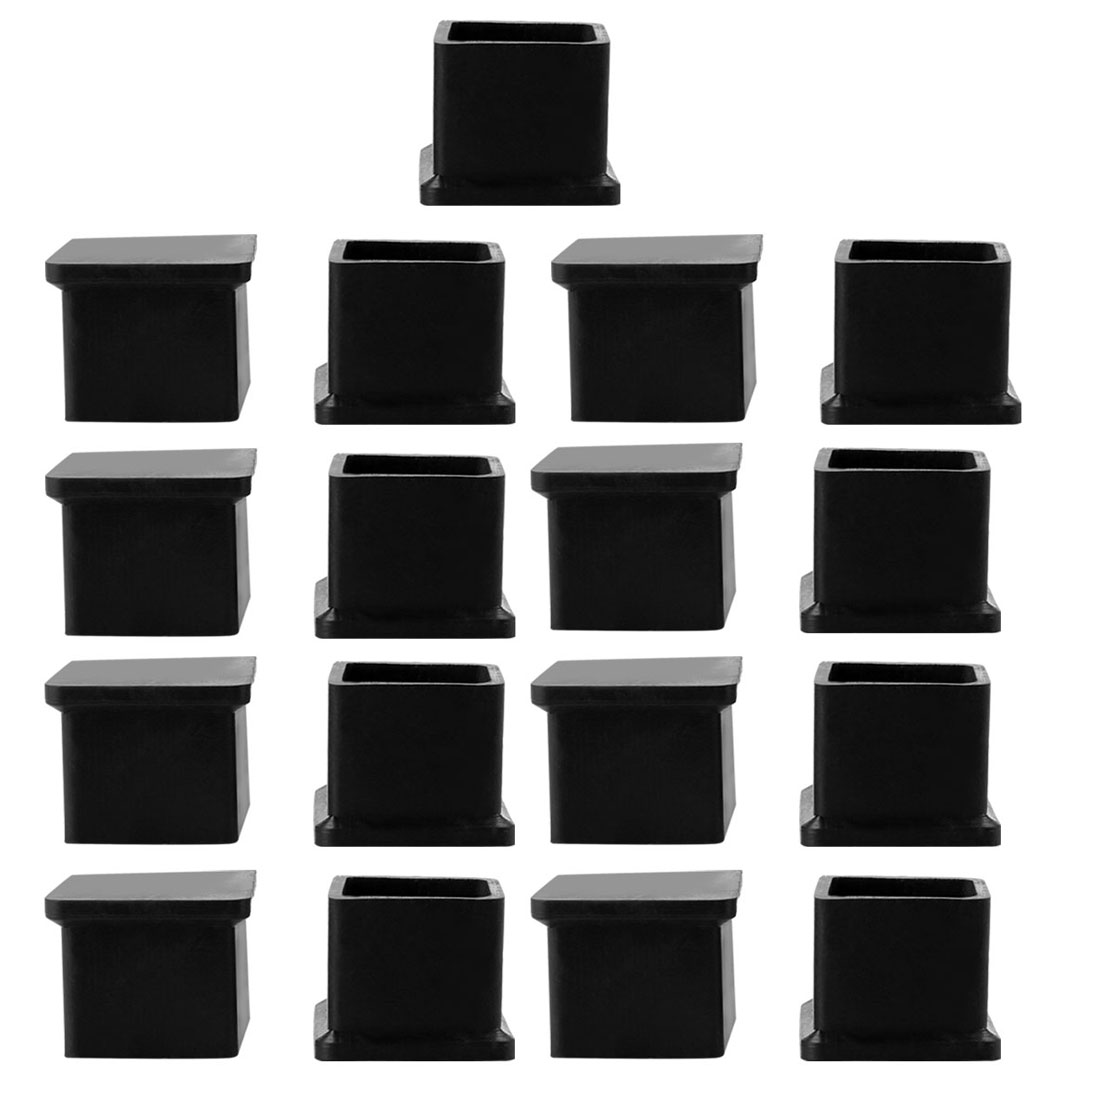 Home Rubber Furniture Table Foot Protector Caps Cover Black 22mm x 22mm 17 Pcs